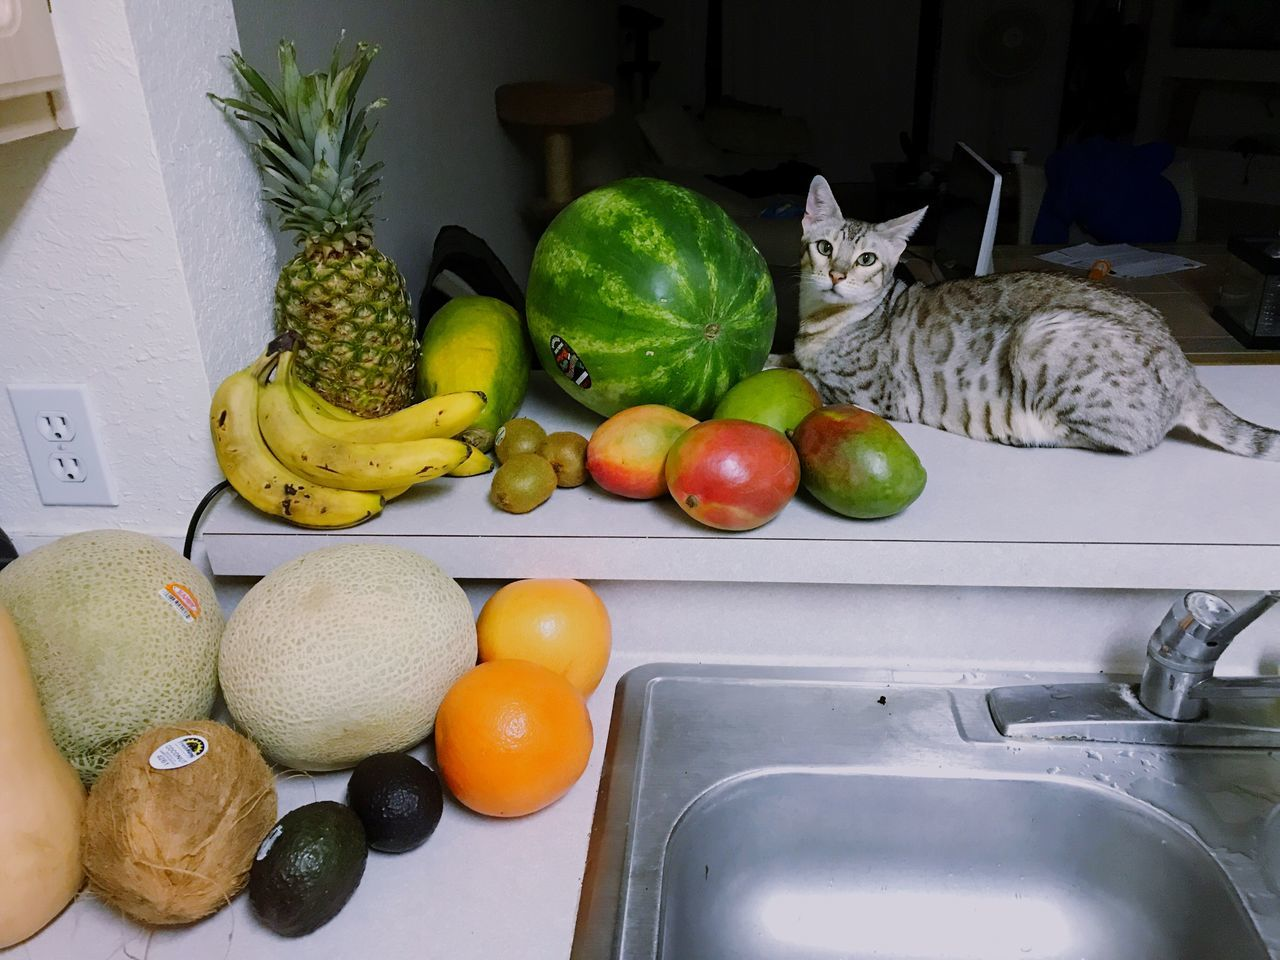 indoors, domestic kitchen, fruit, no people, kitchen, vegetable, domestic room, domestic cat, freshness, food, day, mammal